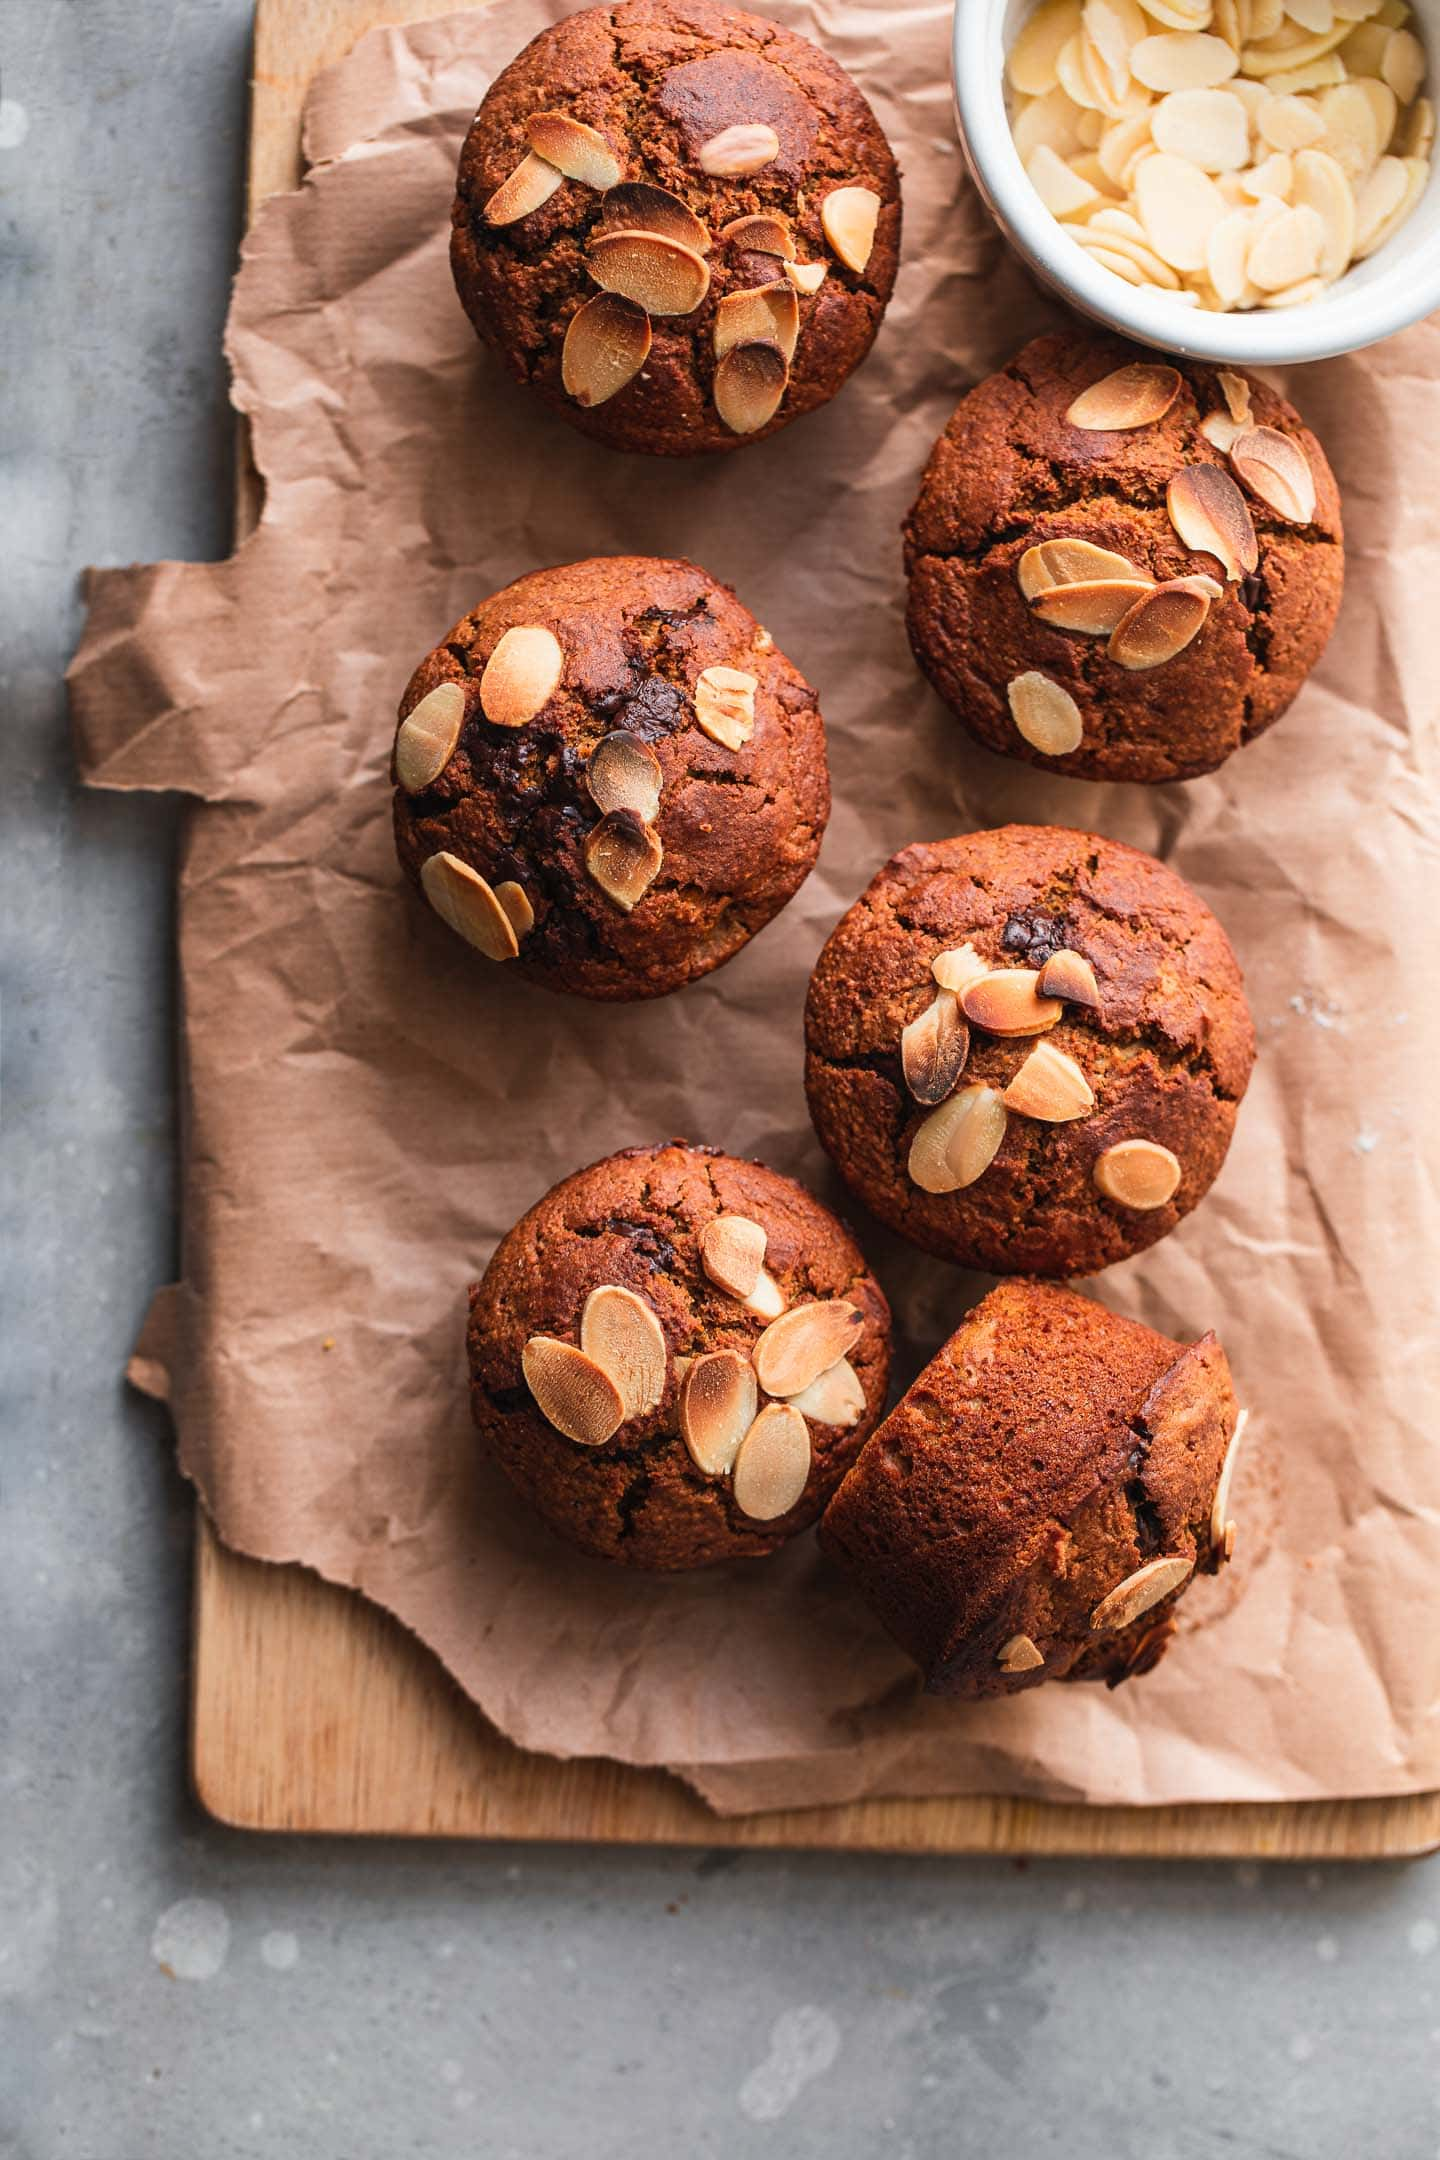 Vegan muffins with almonds on a wooden board